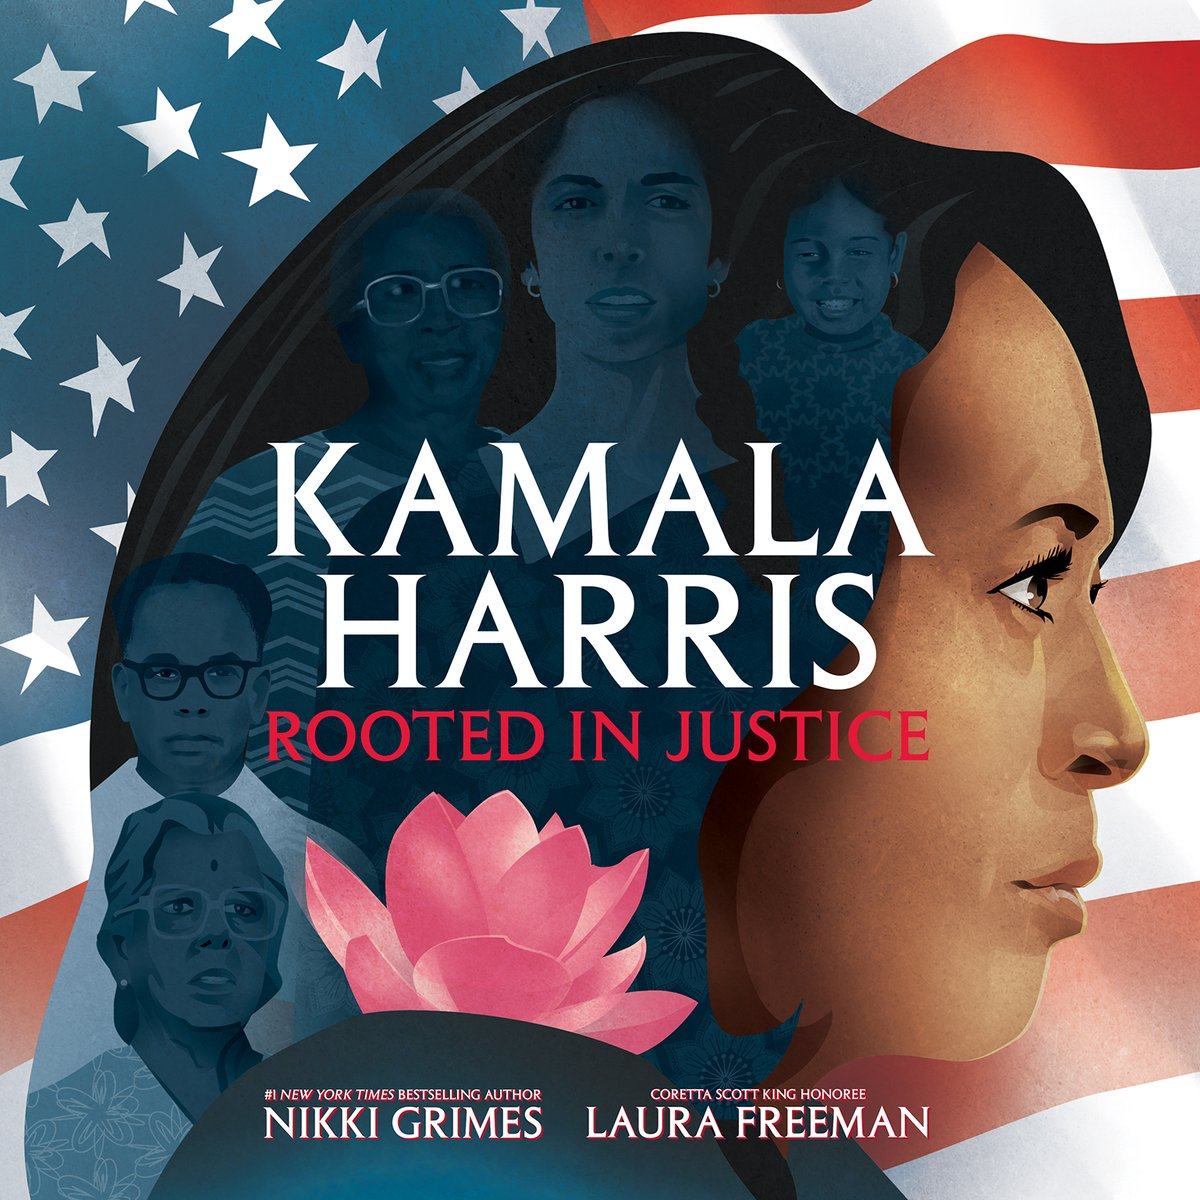 My Kamala Harris book isn't even out yet, but I'm already getting political blow-back from people who don't like her. NOTE: The picture book audience is too young to vote, folks. Chill.  No need to treat a picture book biography as if it's a political treatise. Seriously. https://t.co/yUQPx1ZkxT